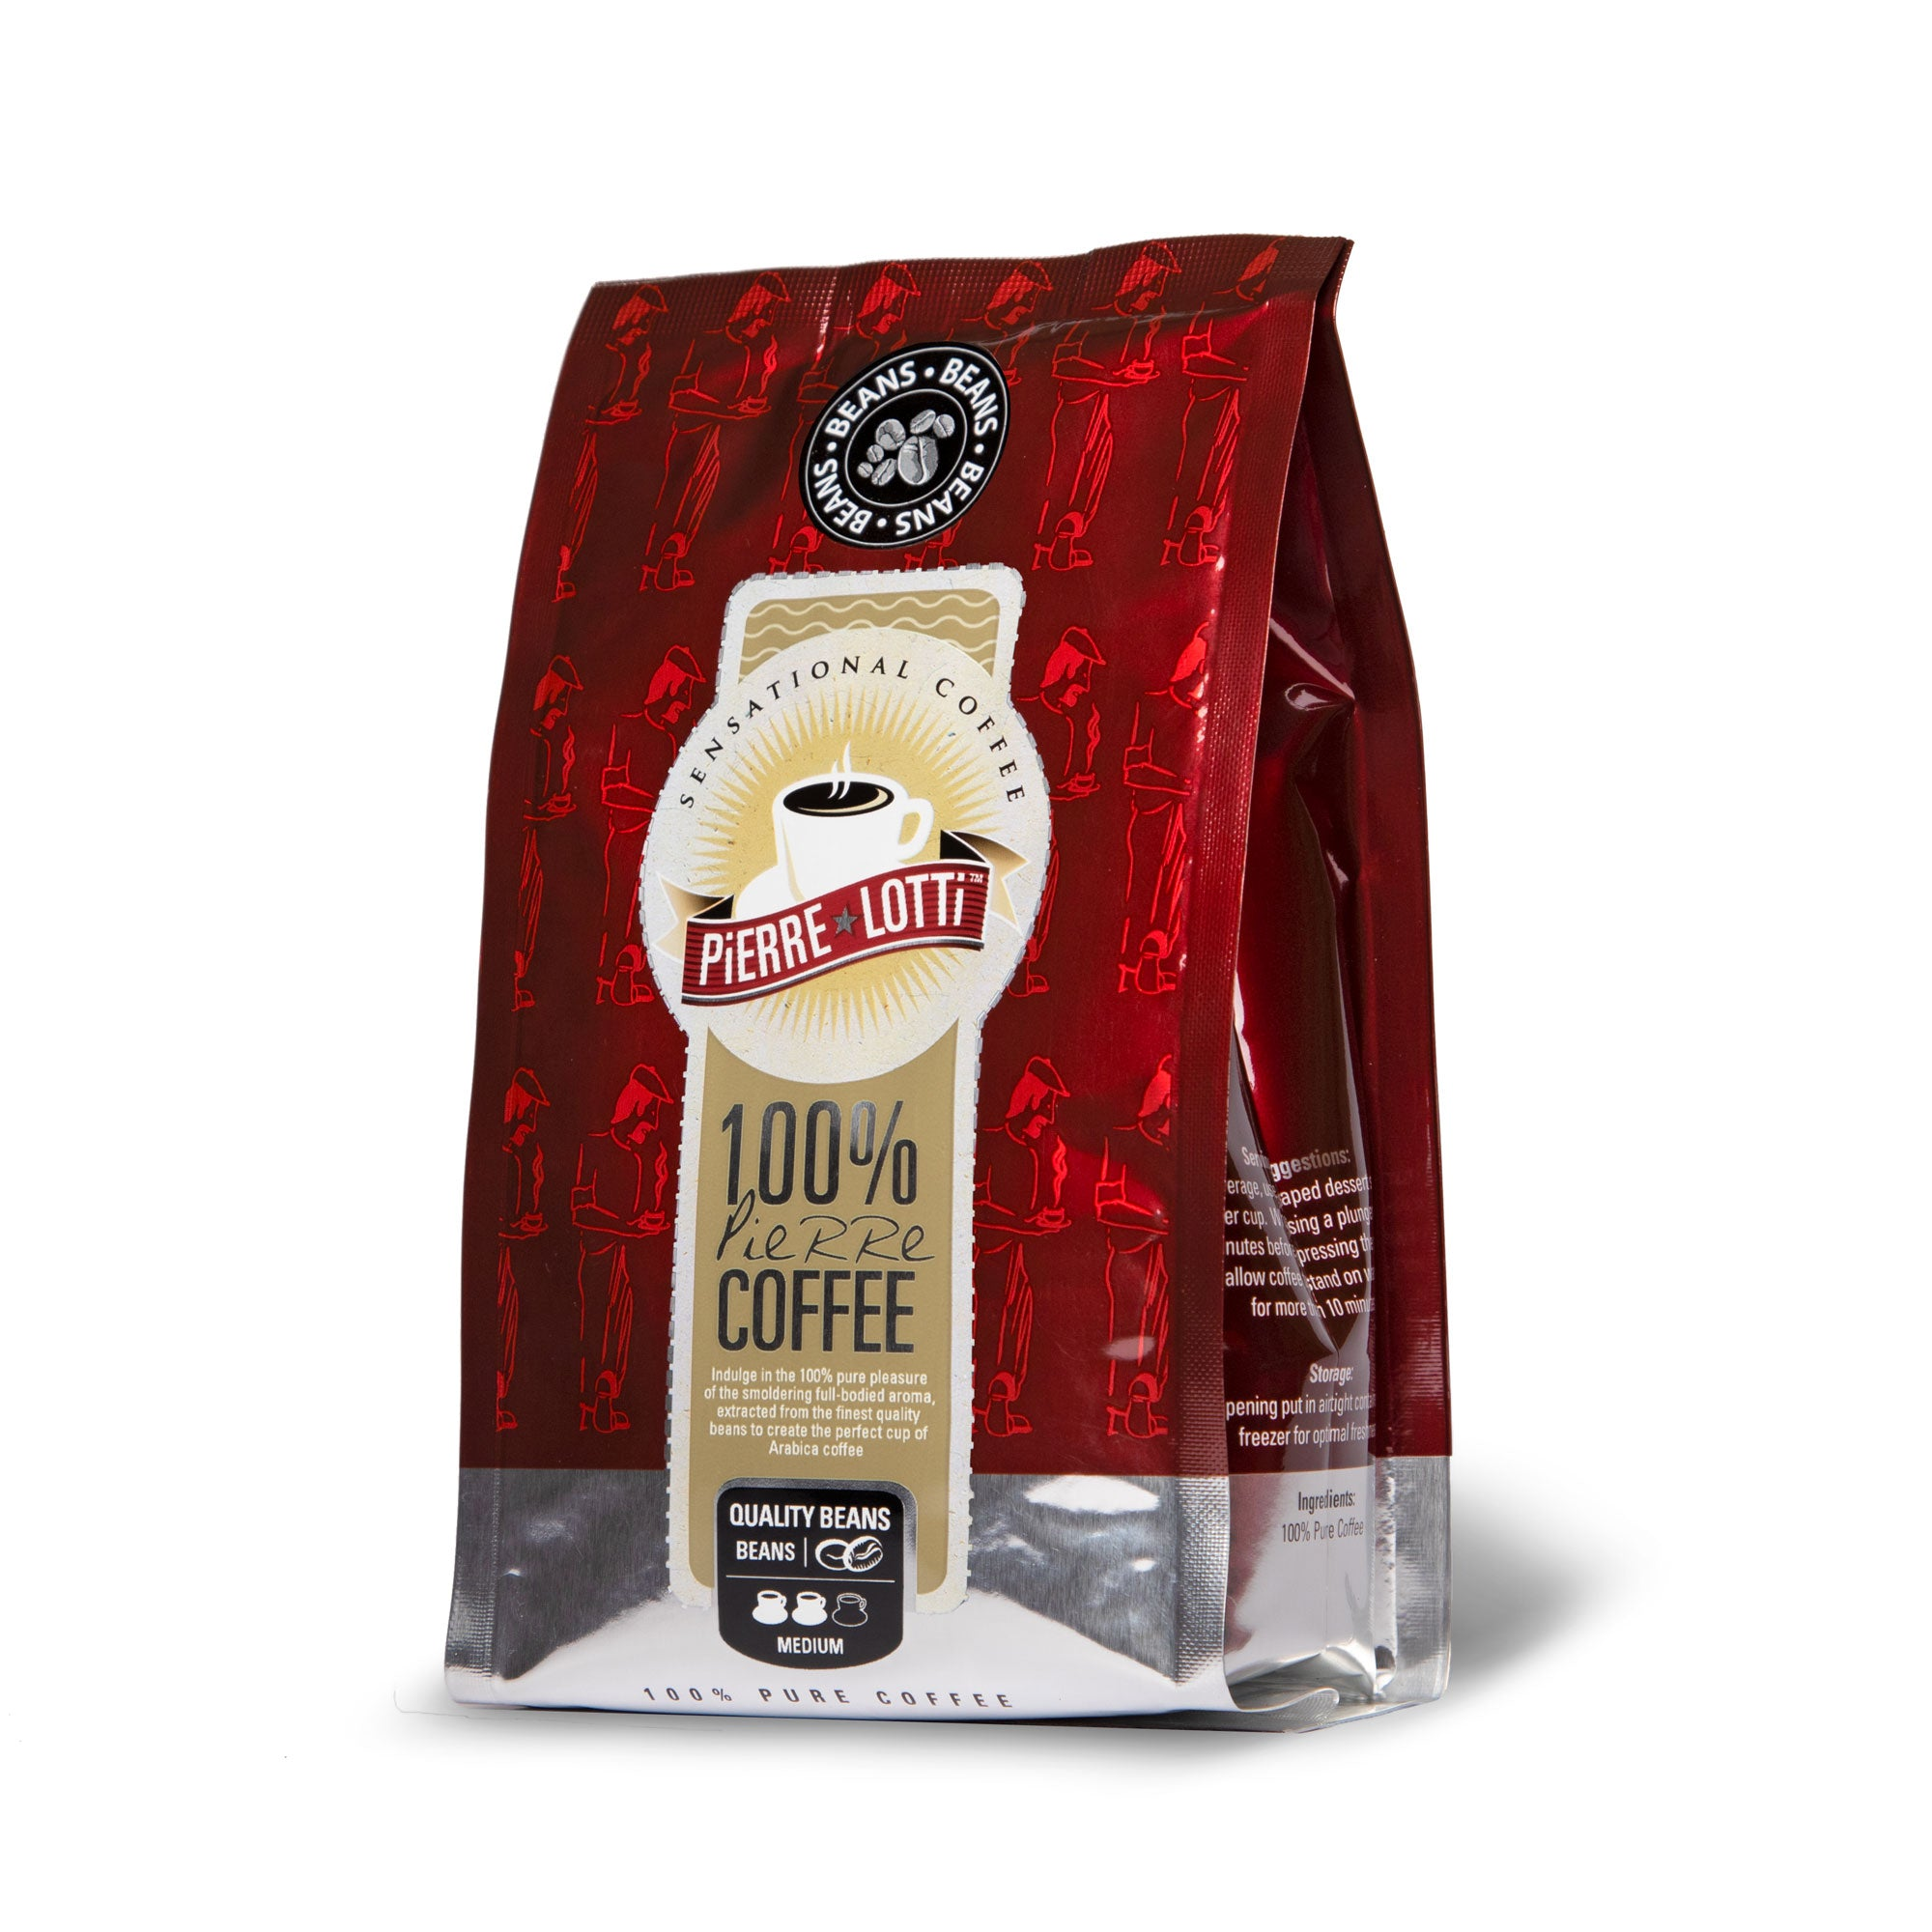 Quality Beans - Pierre Lotti Coffee